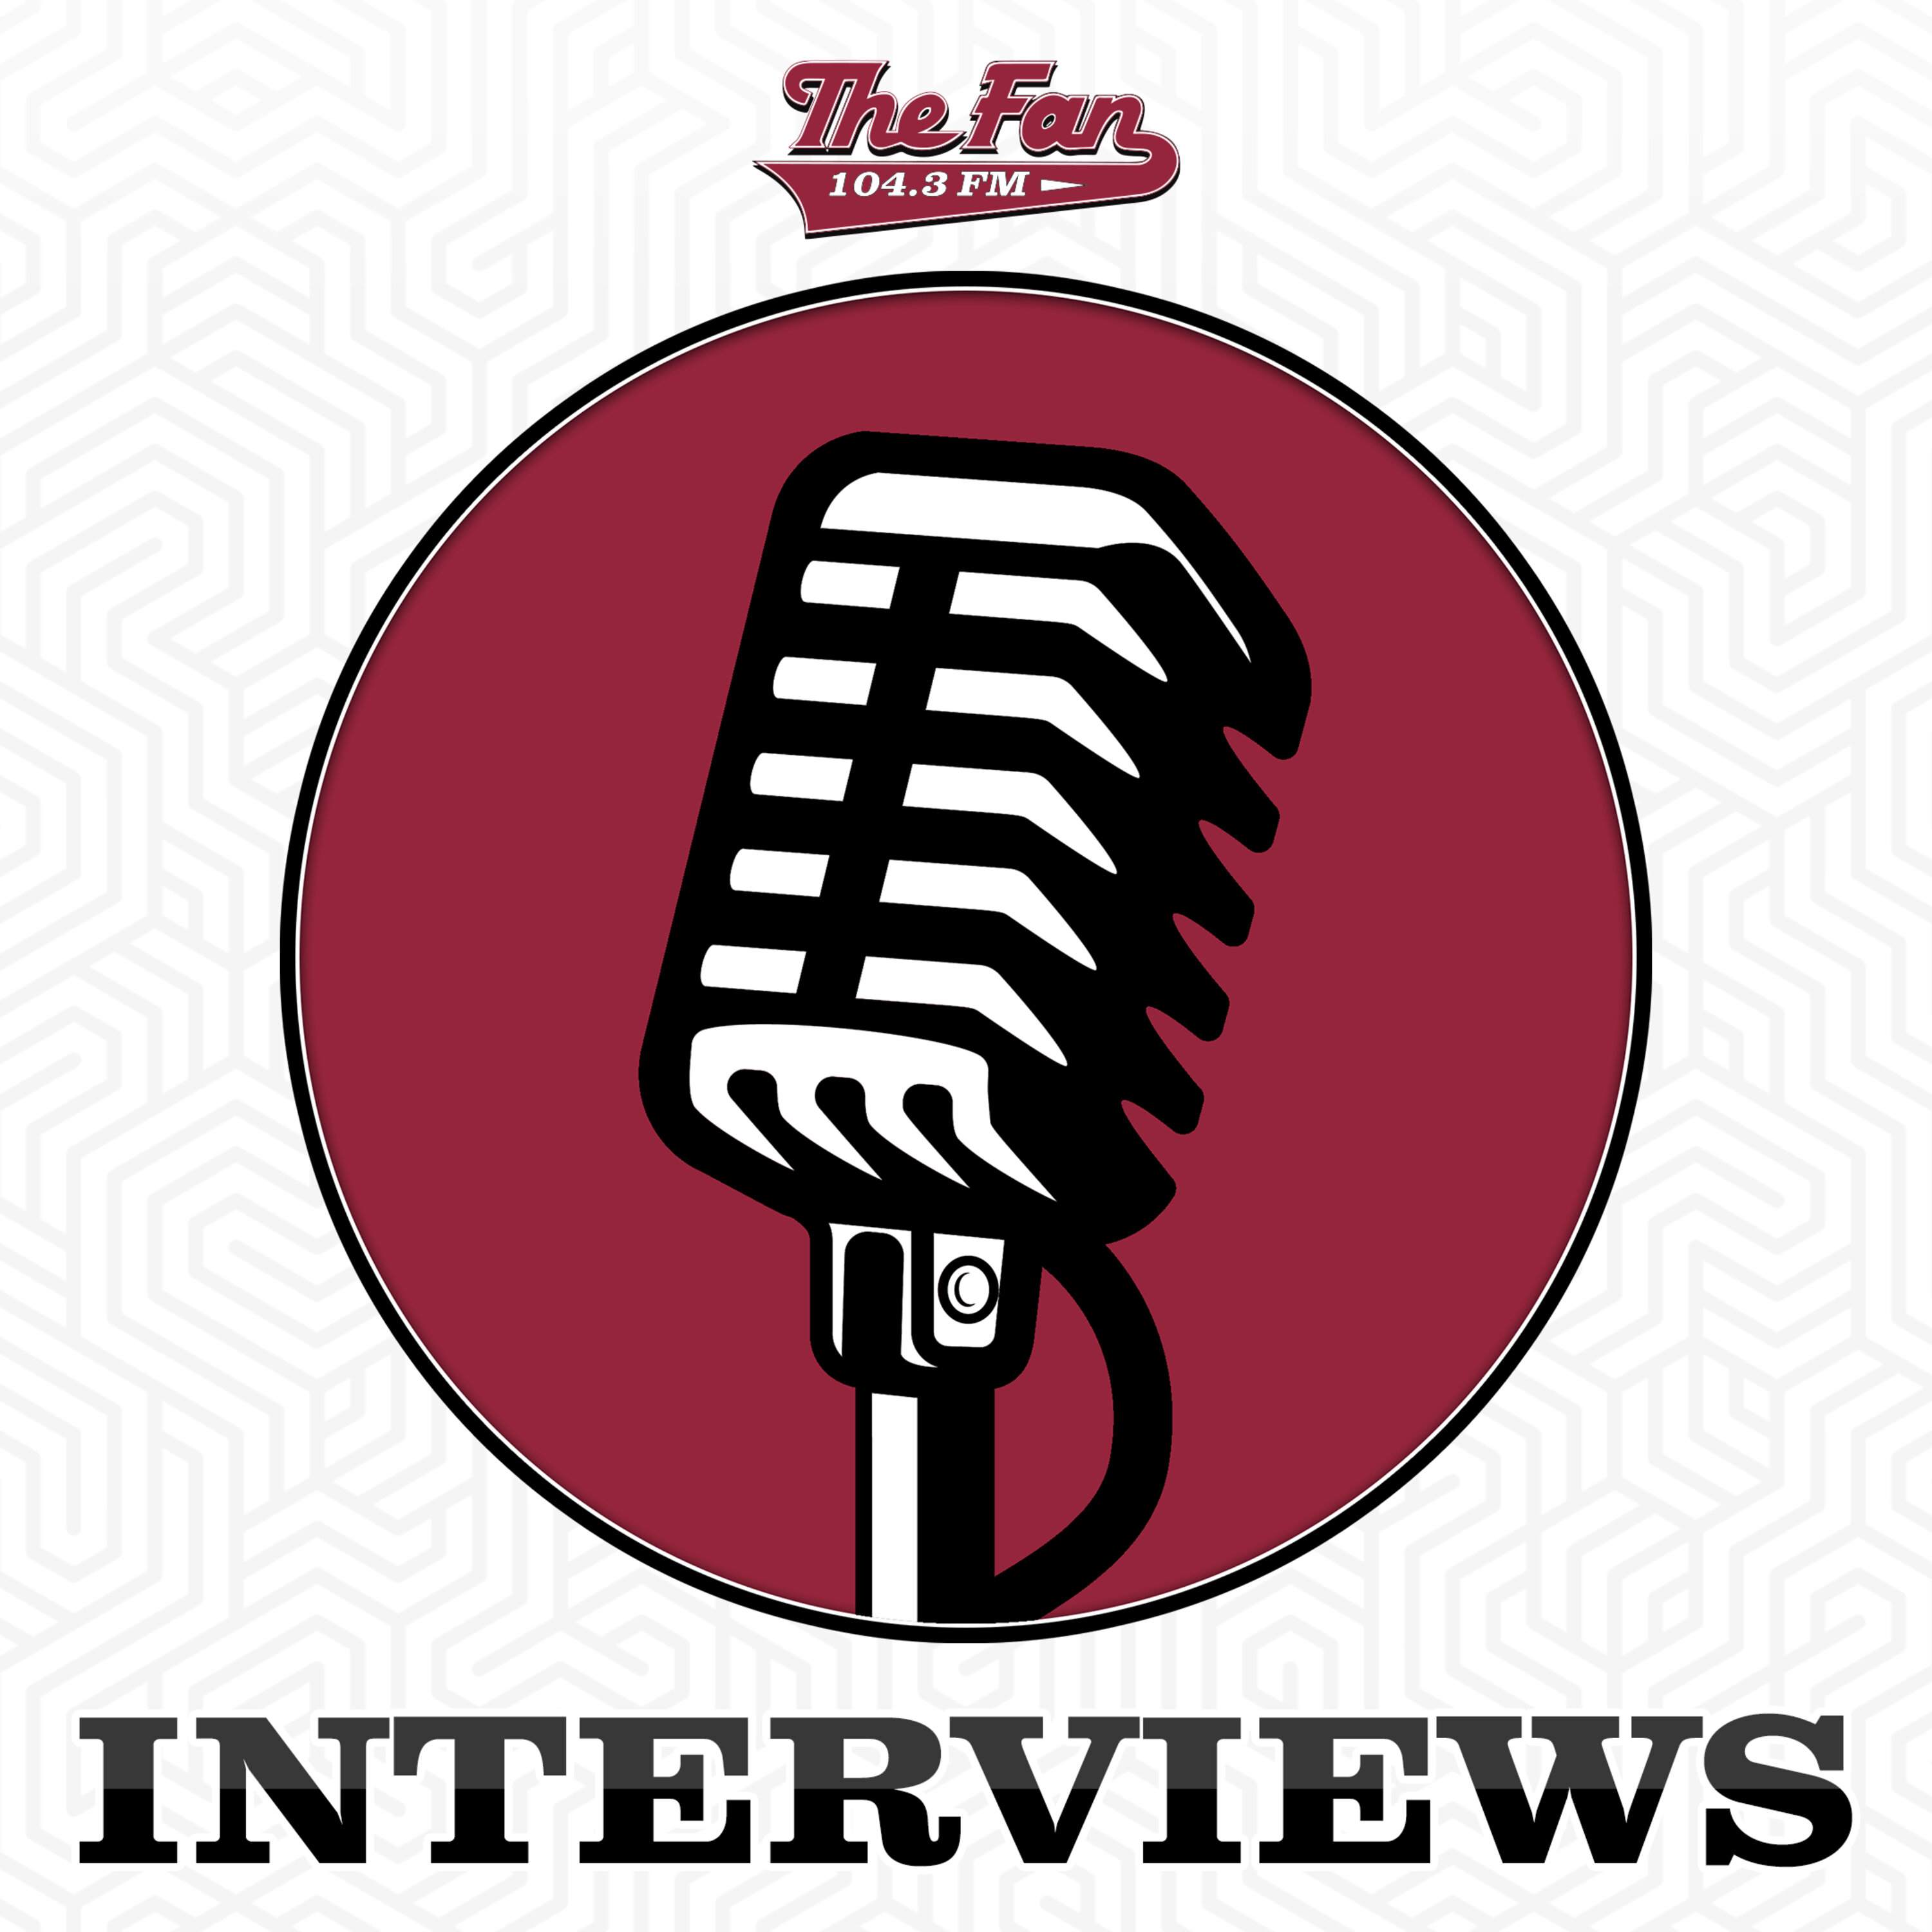 The Fan Interviews Cover Image